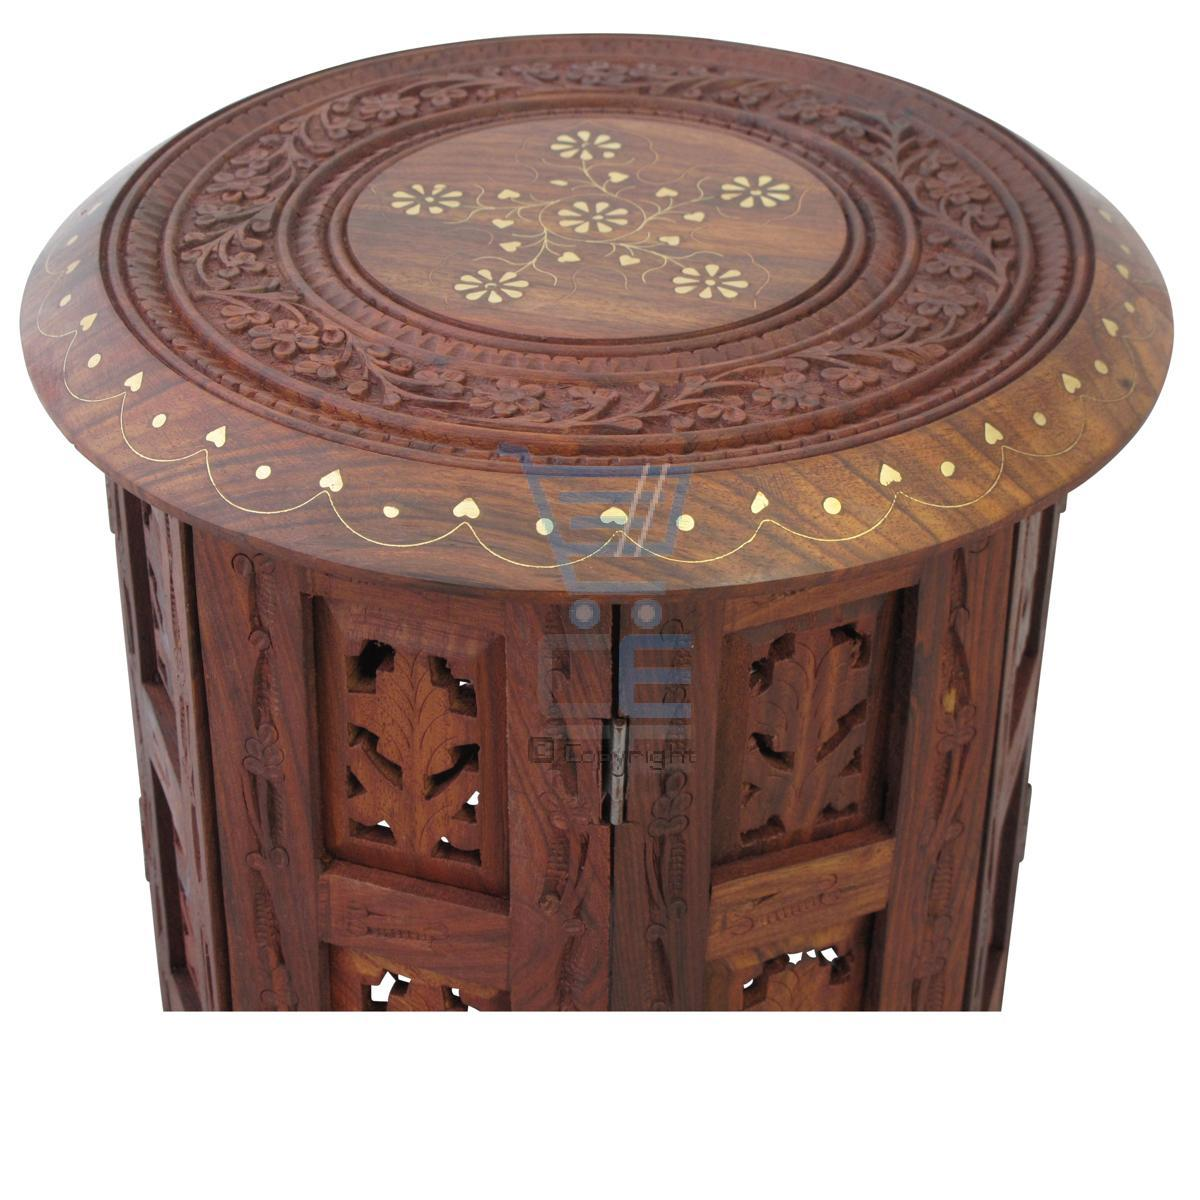 Round 3 Round Coffee Table Made Of Metal Cm ø80x23h: Small Side Table Wooden Round Coffee Lamp End Brown Hand